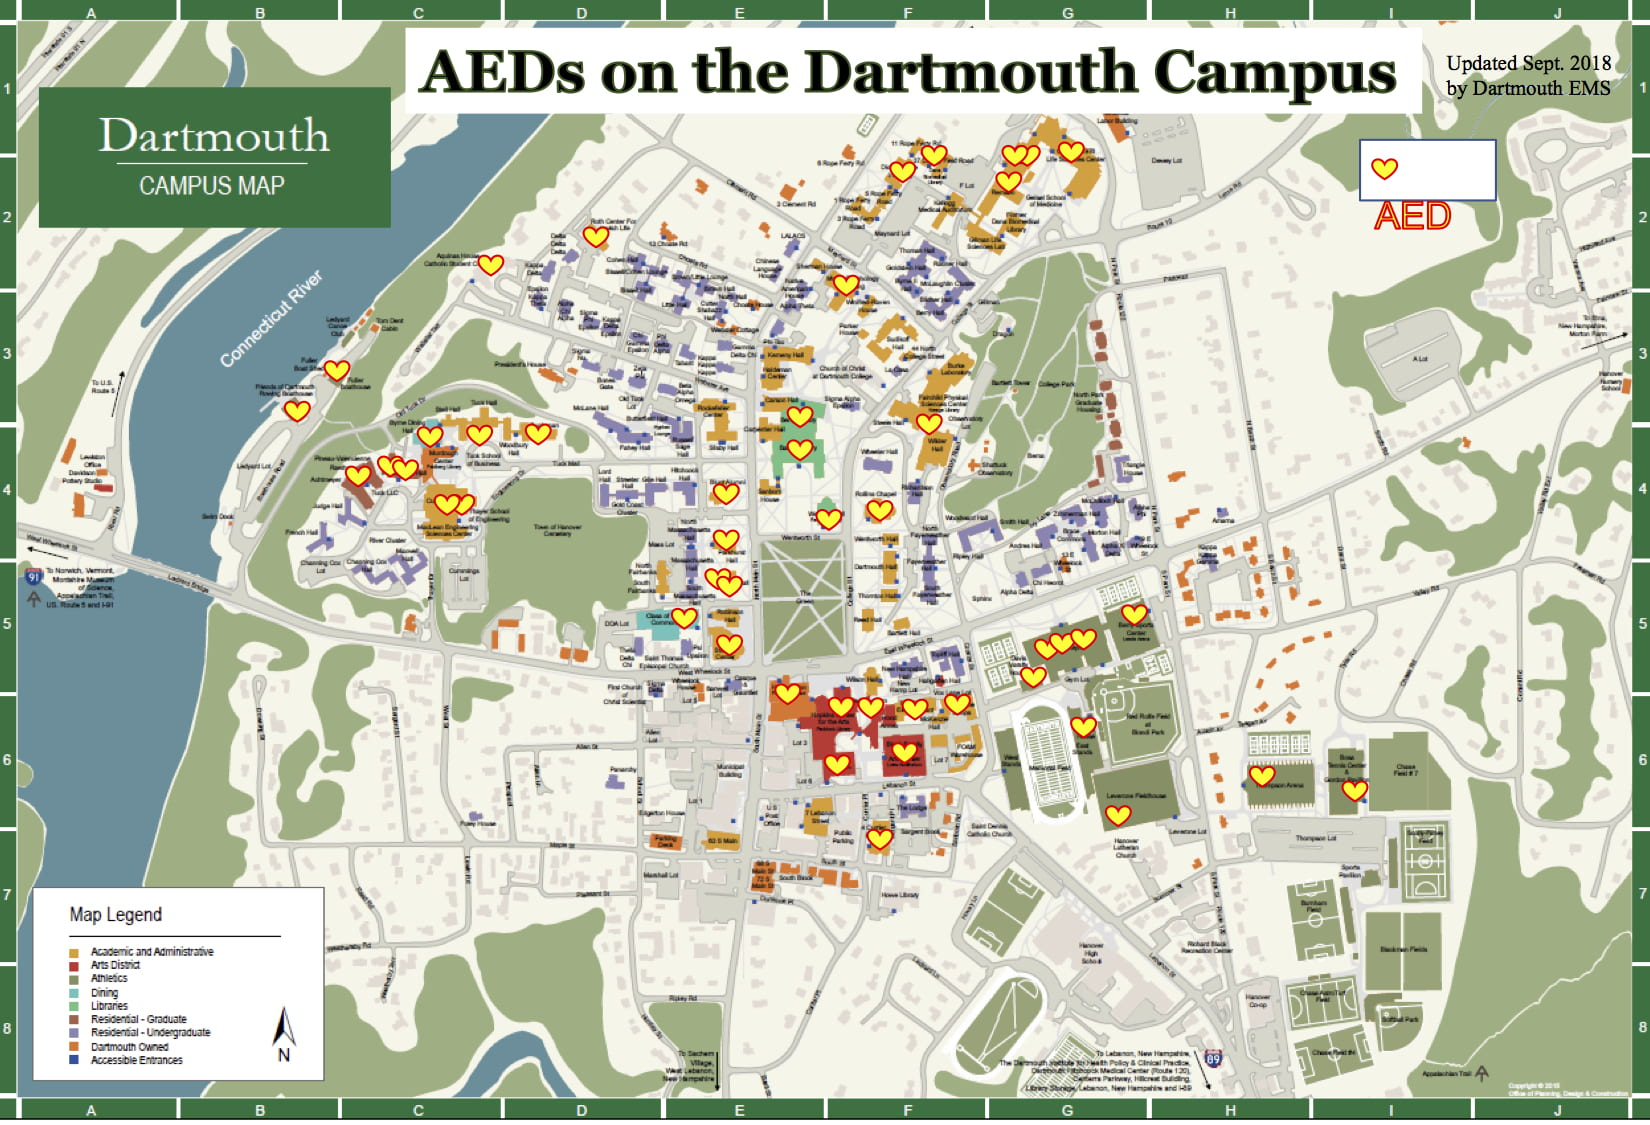 AED Management – Dartmouth EMS on old colony map, sarnia map, salcombe map, devon england uk map, wichita st map, ft. mcmurray map, prairie view a&m map, london map, fishguard map, uc riverside map, miami of ohio map, texas a&m kingsville map, hartlepool map, ottery st. mary map, north smithfield map, isle of wight map, dallas baptist map, u wisconsin map, alcorn state map, nova scotia map,